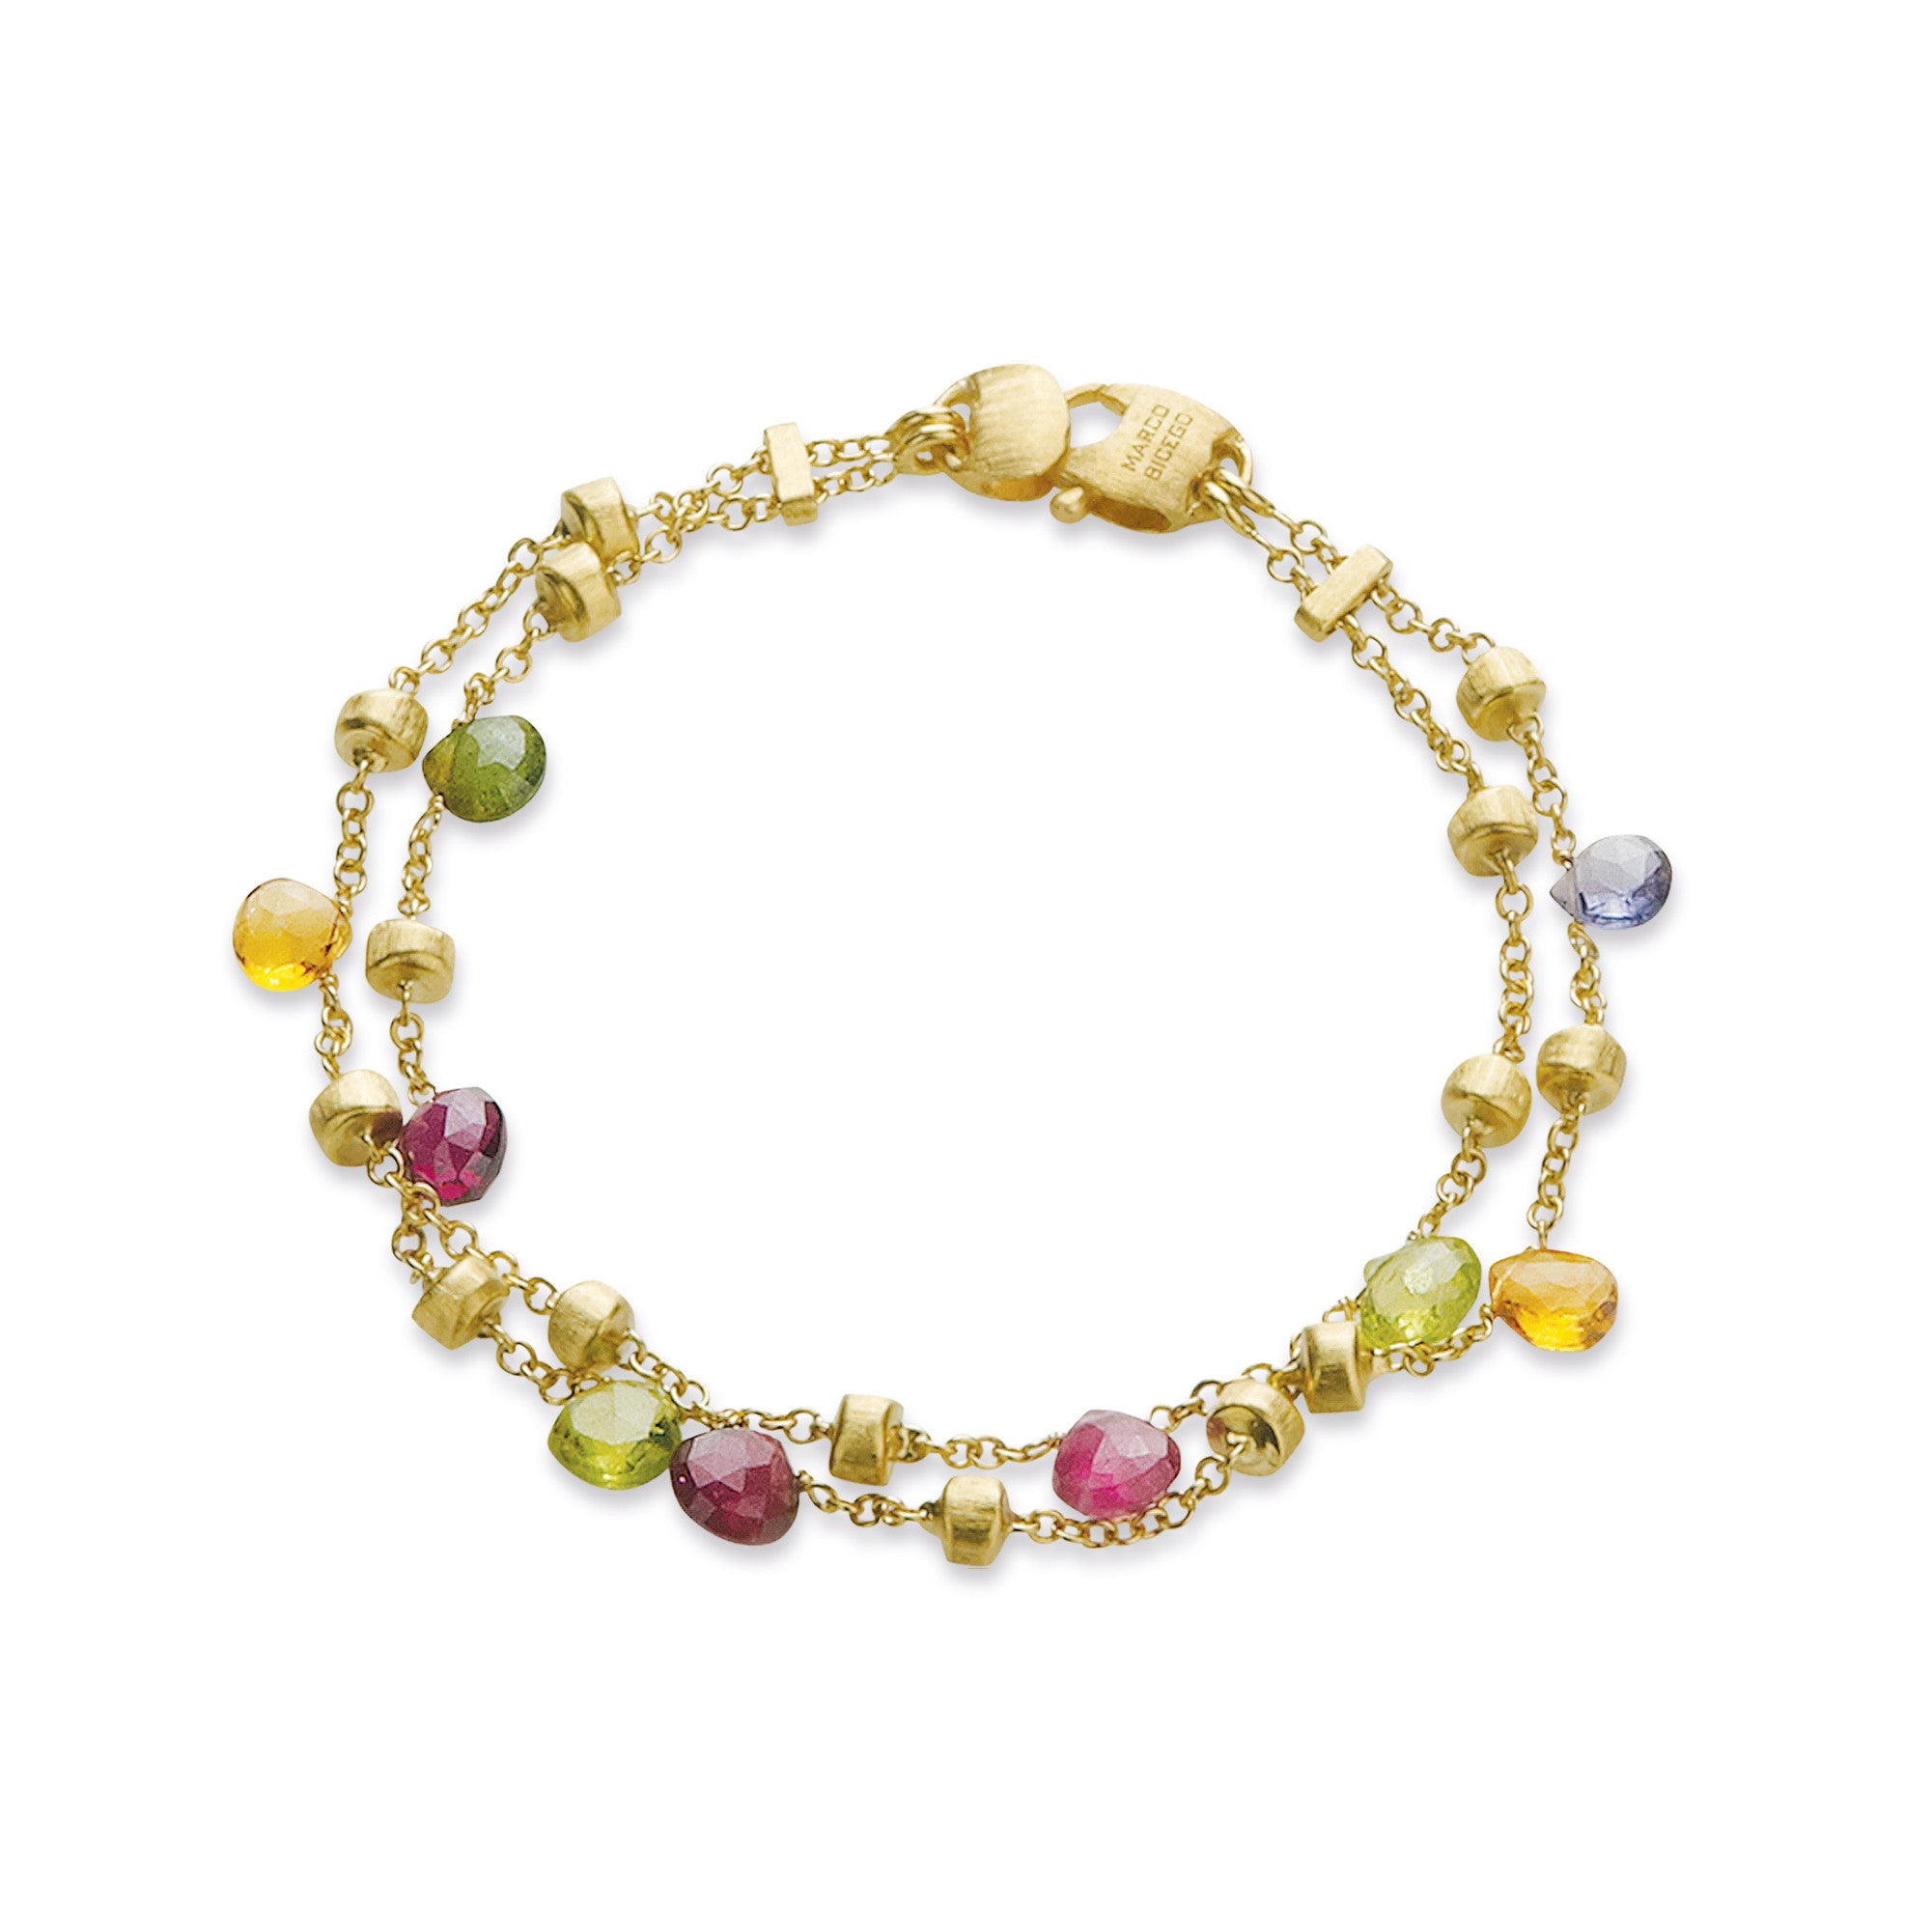 18K Yellow Gold 2-Strand Mixed Stone Bracelet